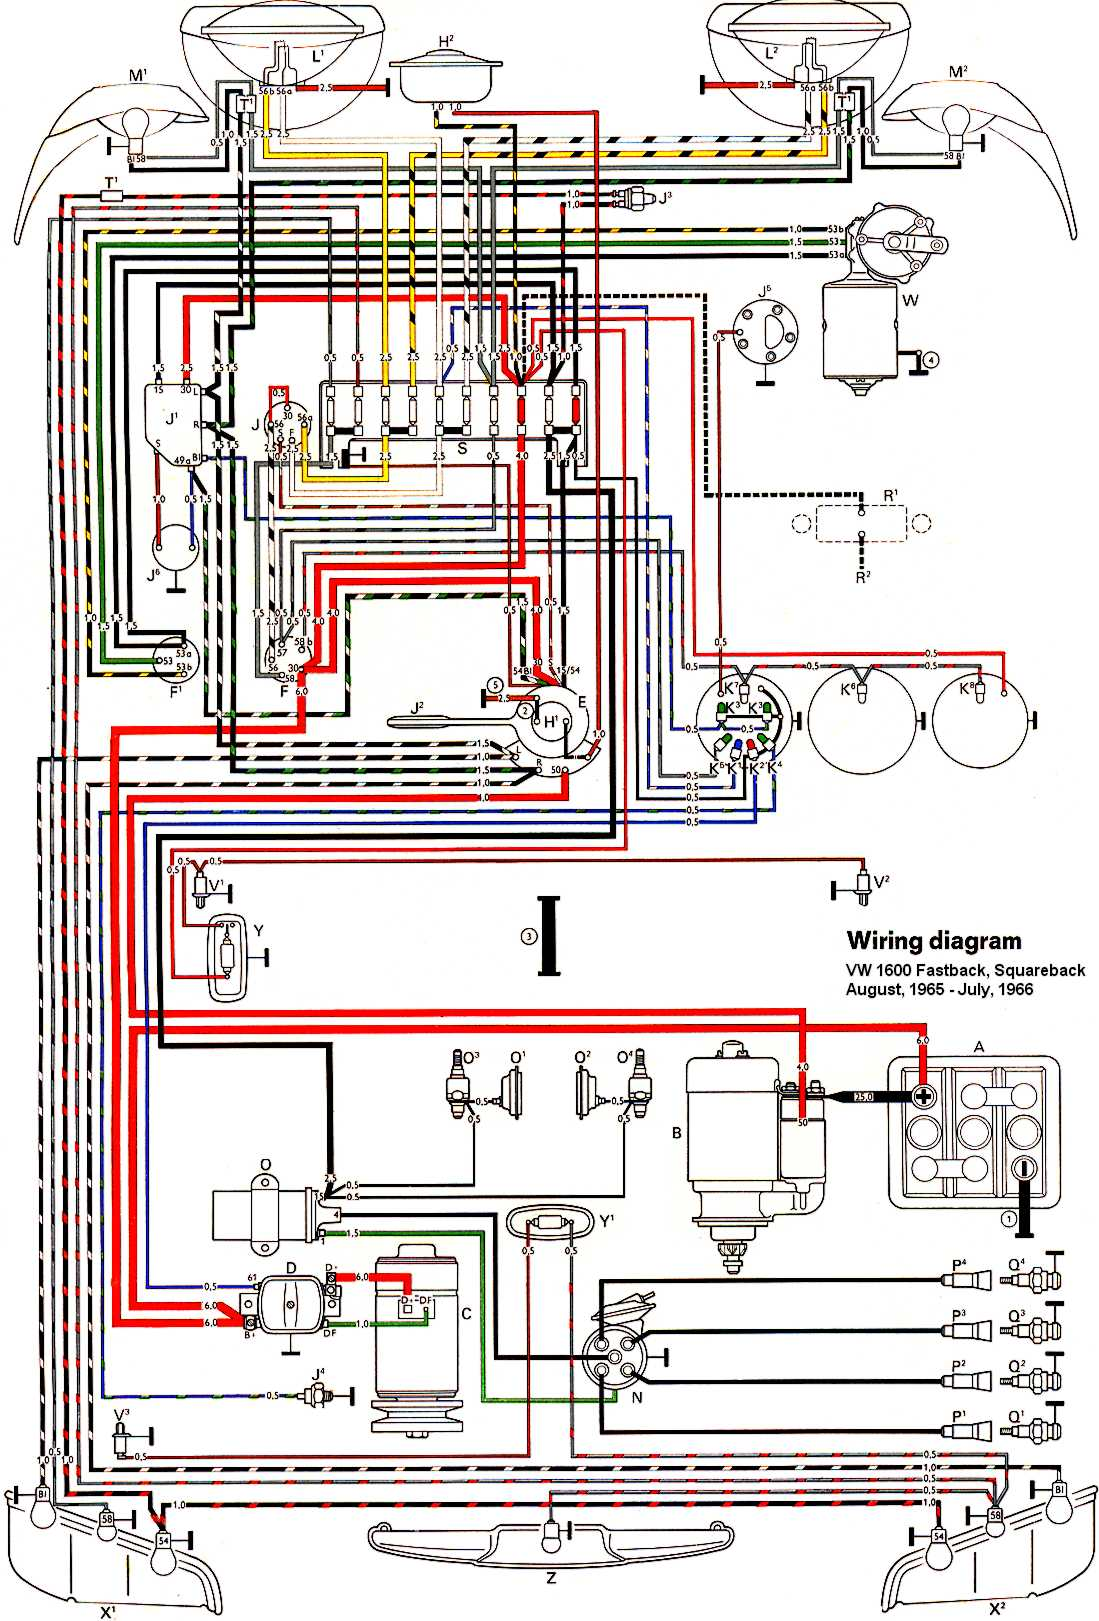 thesamba com type 3 wiring diagrams rh thesamba com e type series 3 wiring diagram Volkswagen 2002 Beetle Wiring Diagram